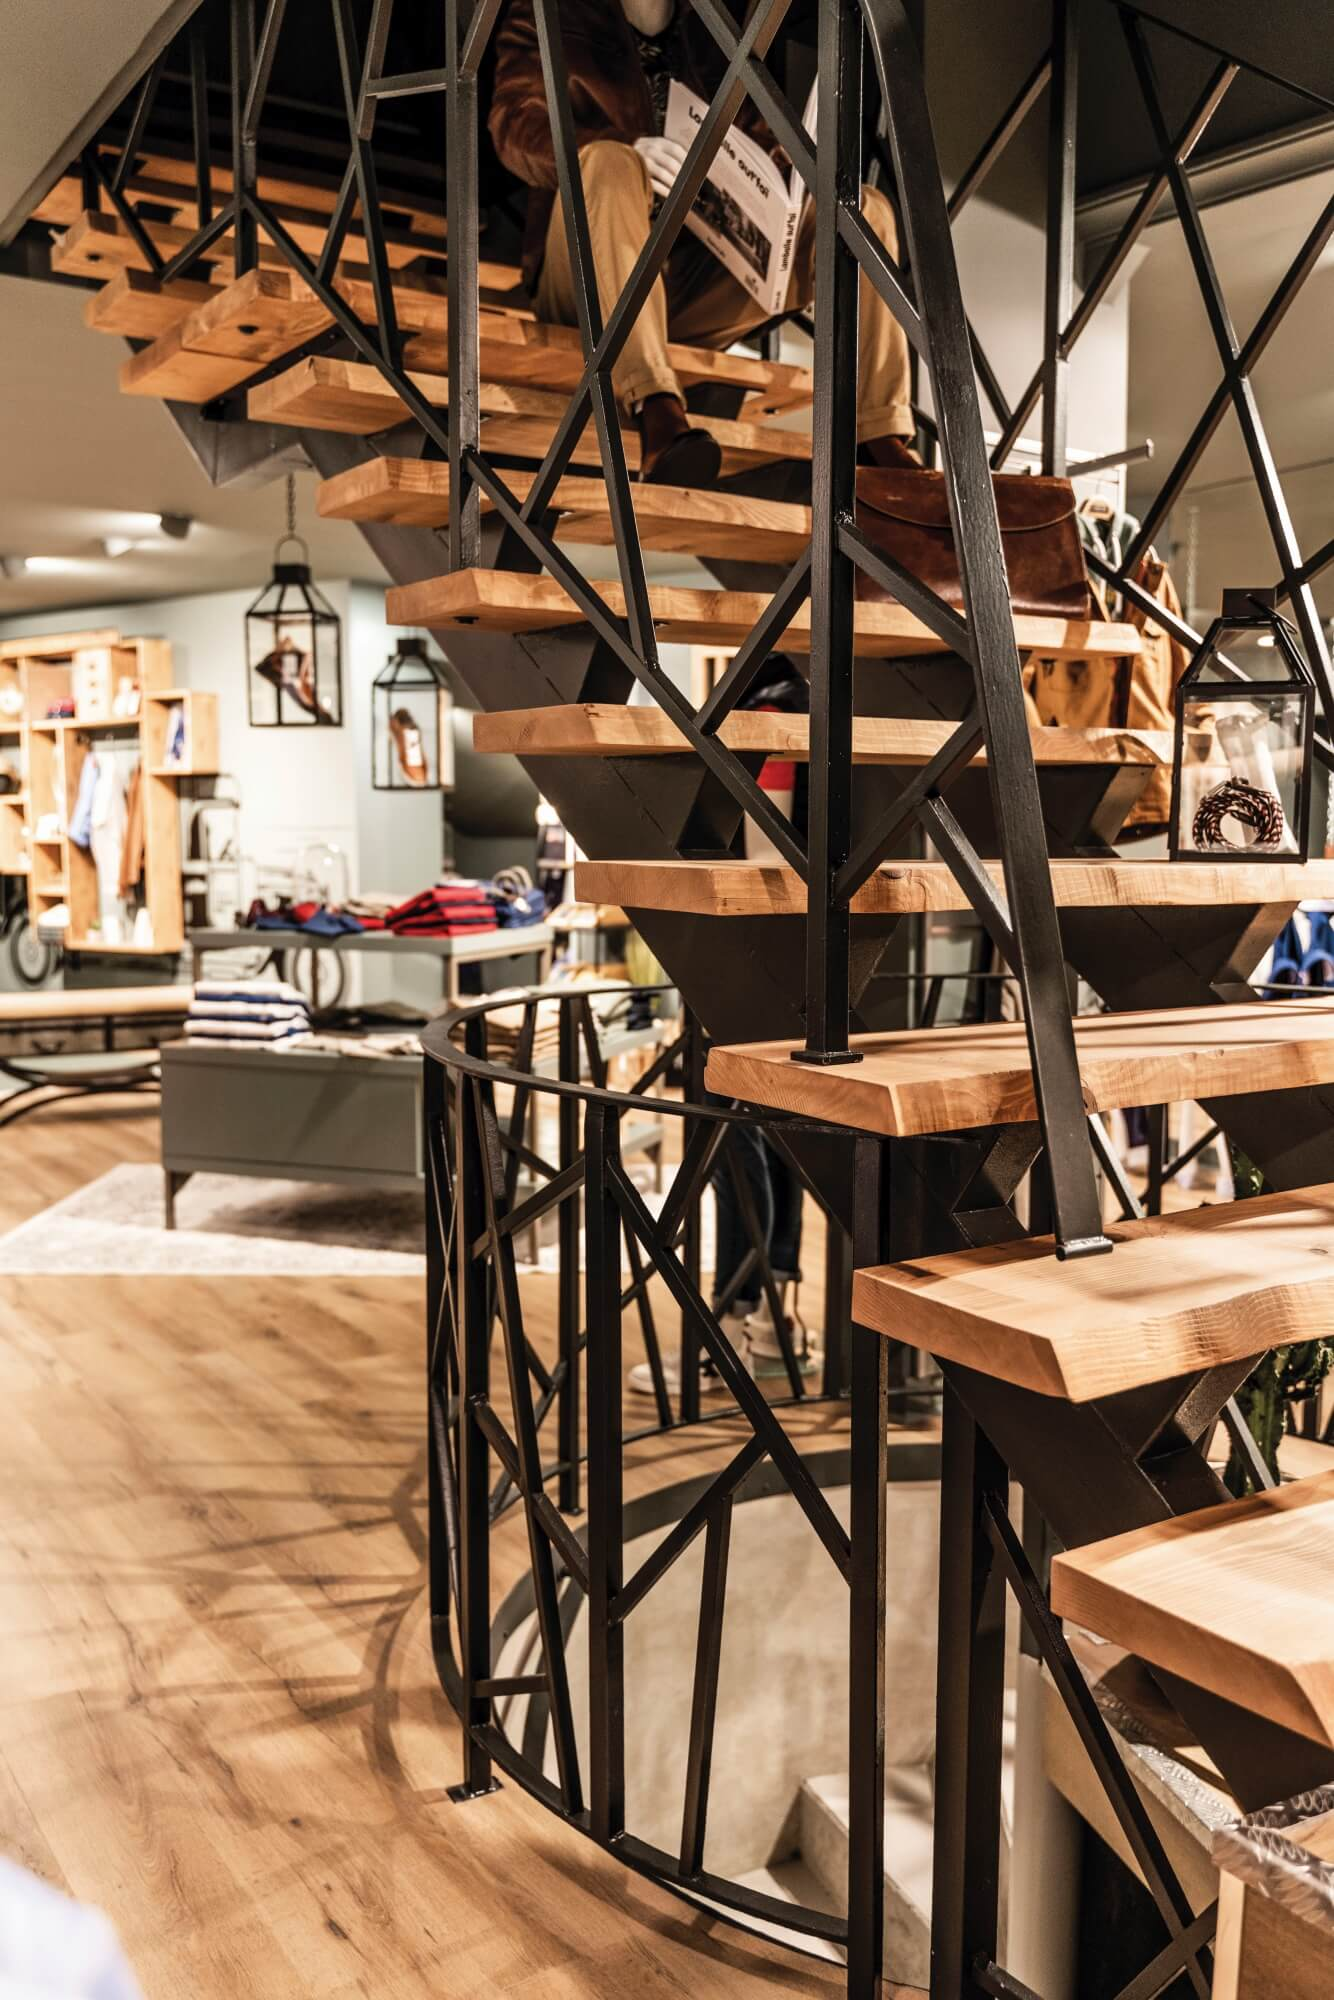 Mens clothing store with hardwax oil finished wood stair treads.